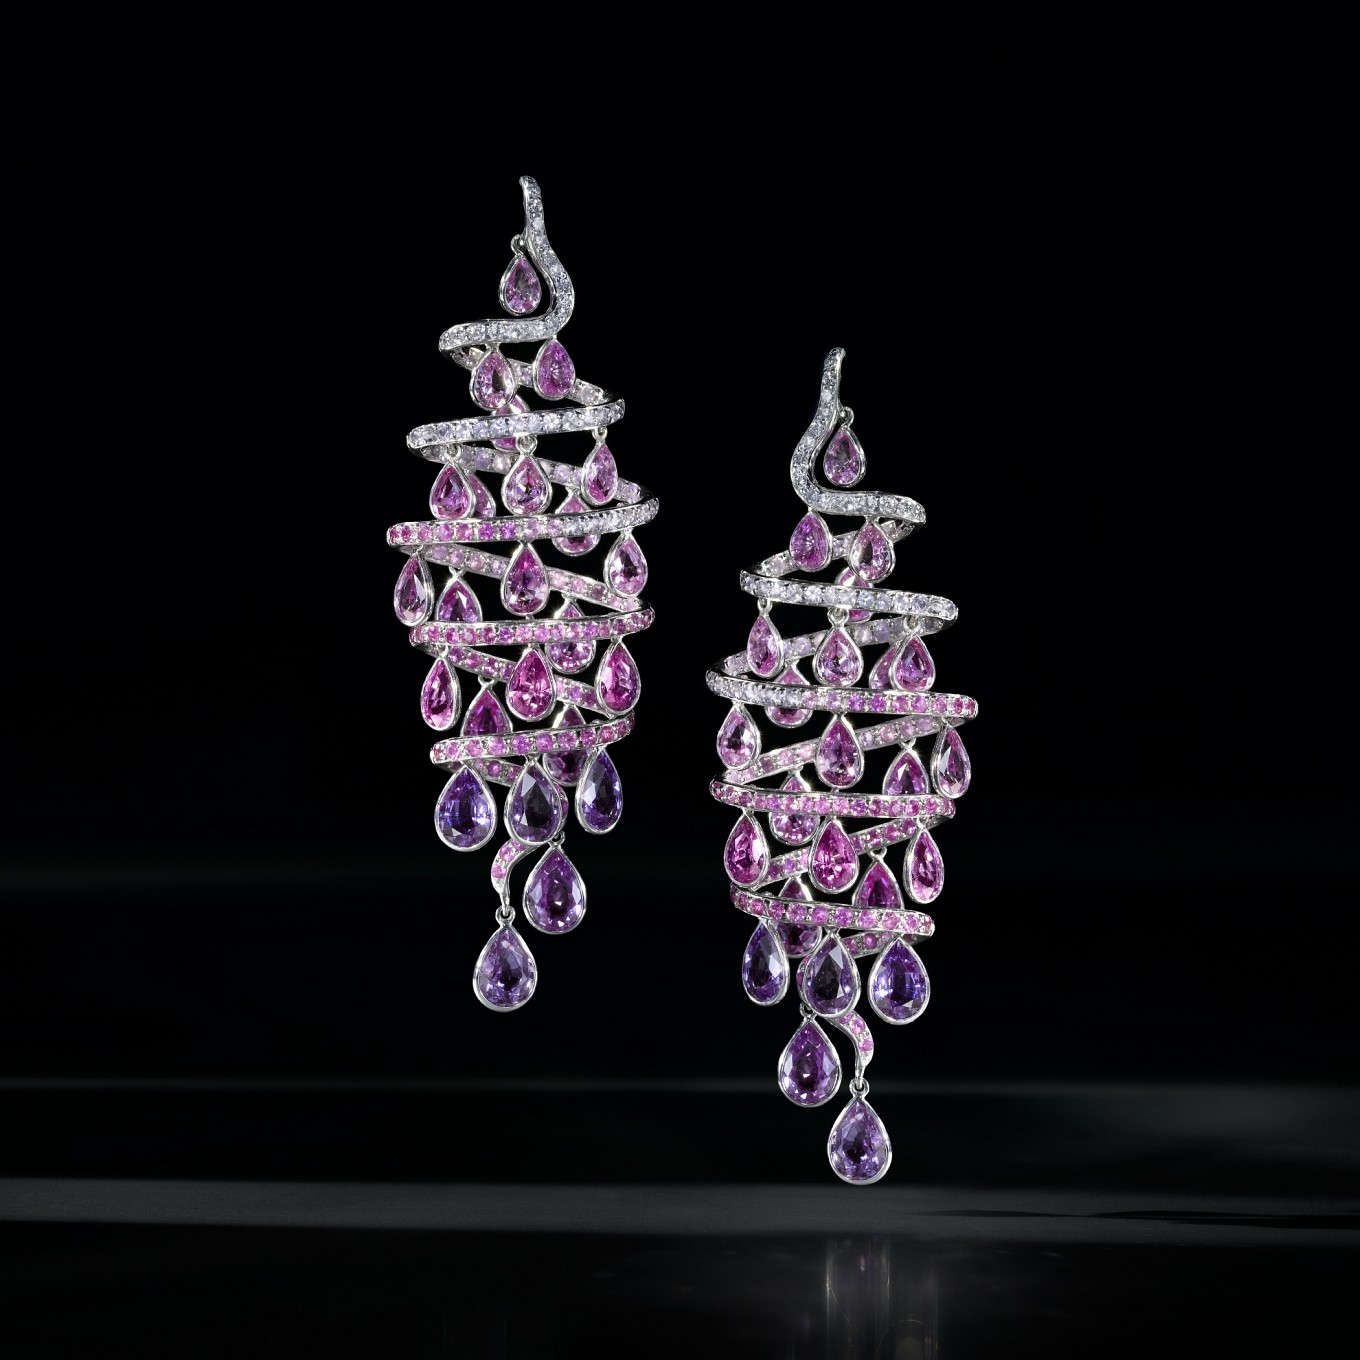 'SPIRAL' PINK & PURPLE SAPPHIRE & DIAMOND EARRINGS (SAPPHIRES 24.22 CTS)